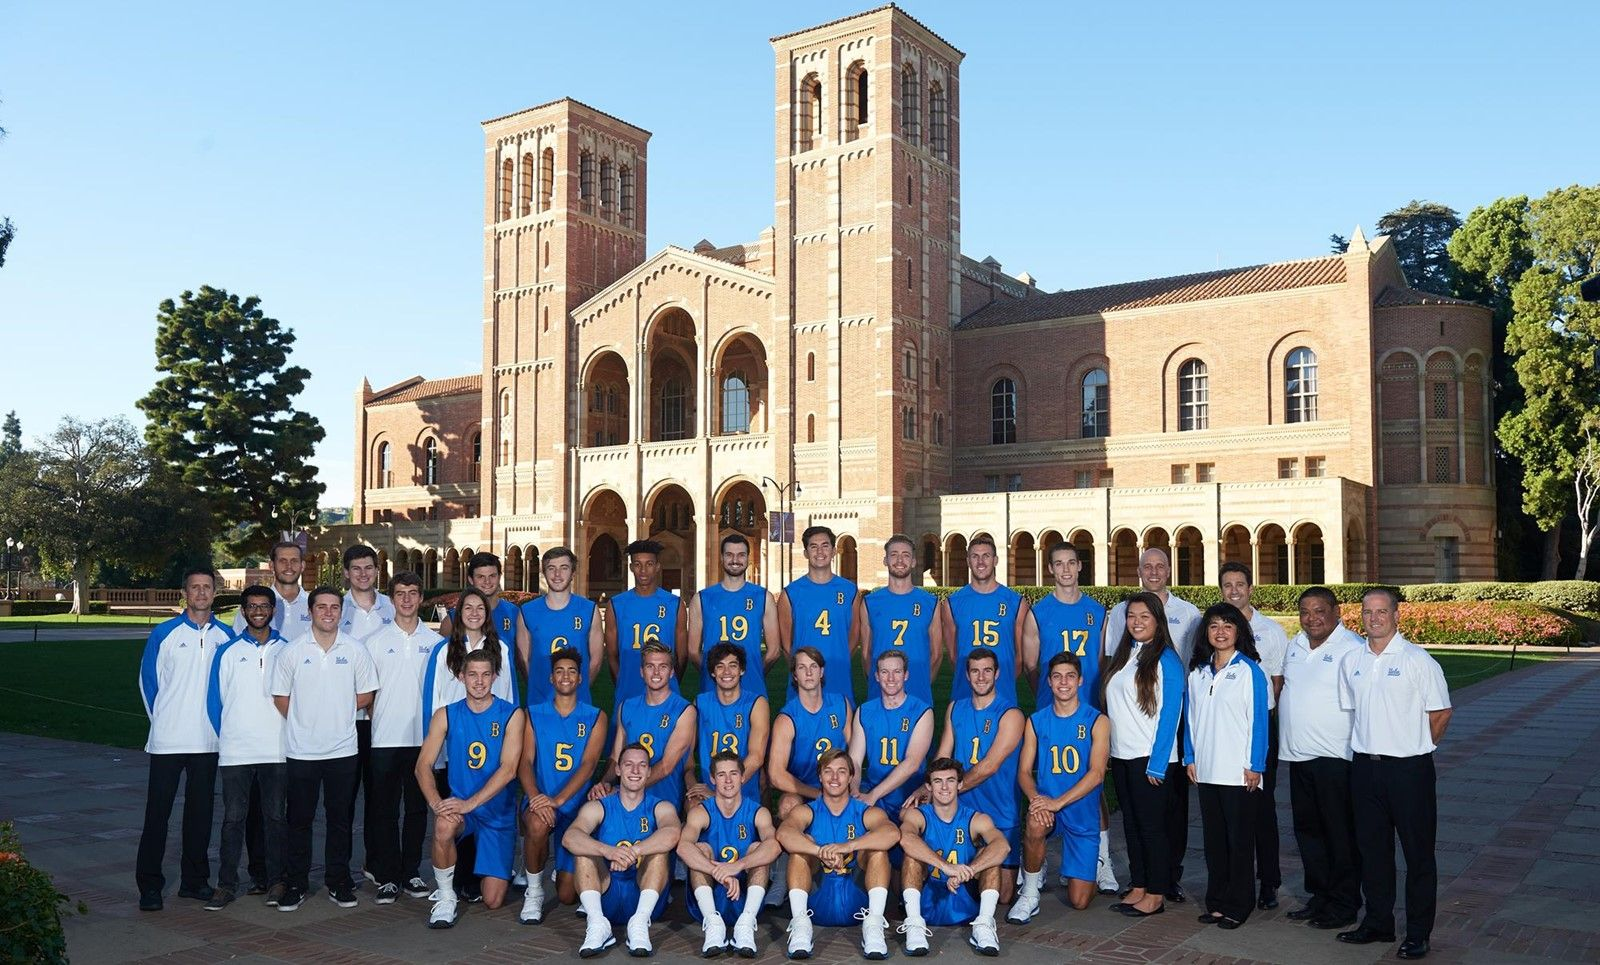 2017 Men S Volleyball Roster Uclabruins Com Ucla Athletics Mens Volleyball Volleyball Roster